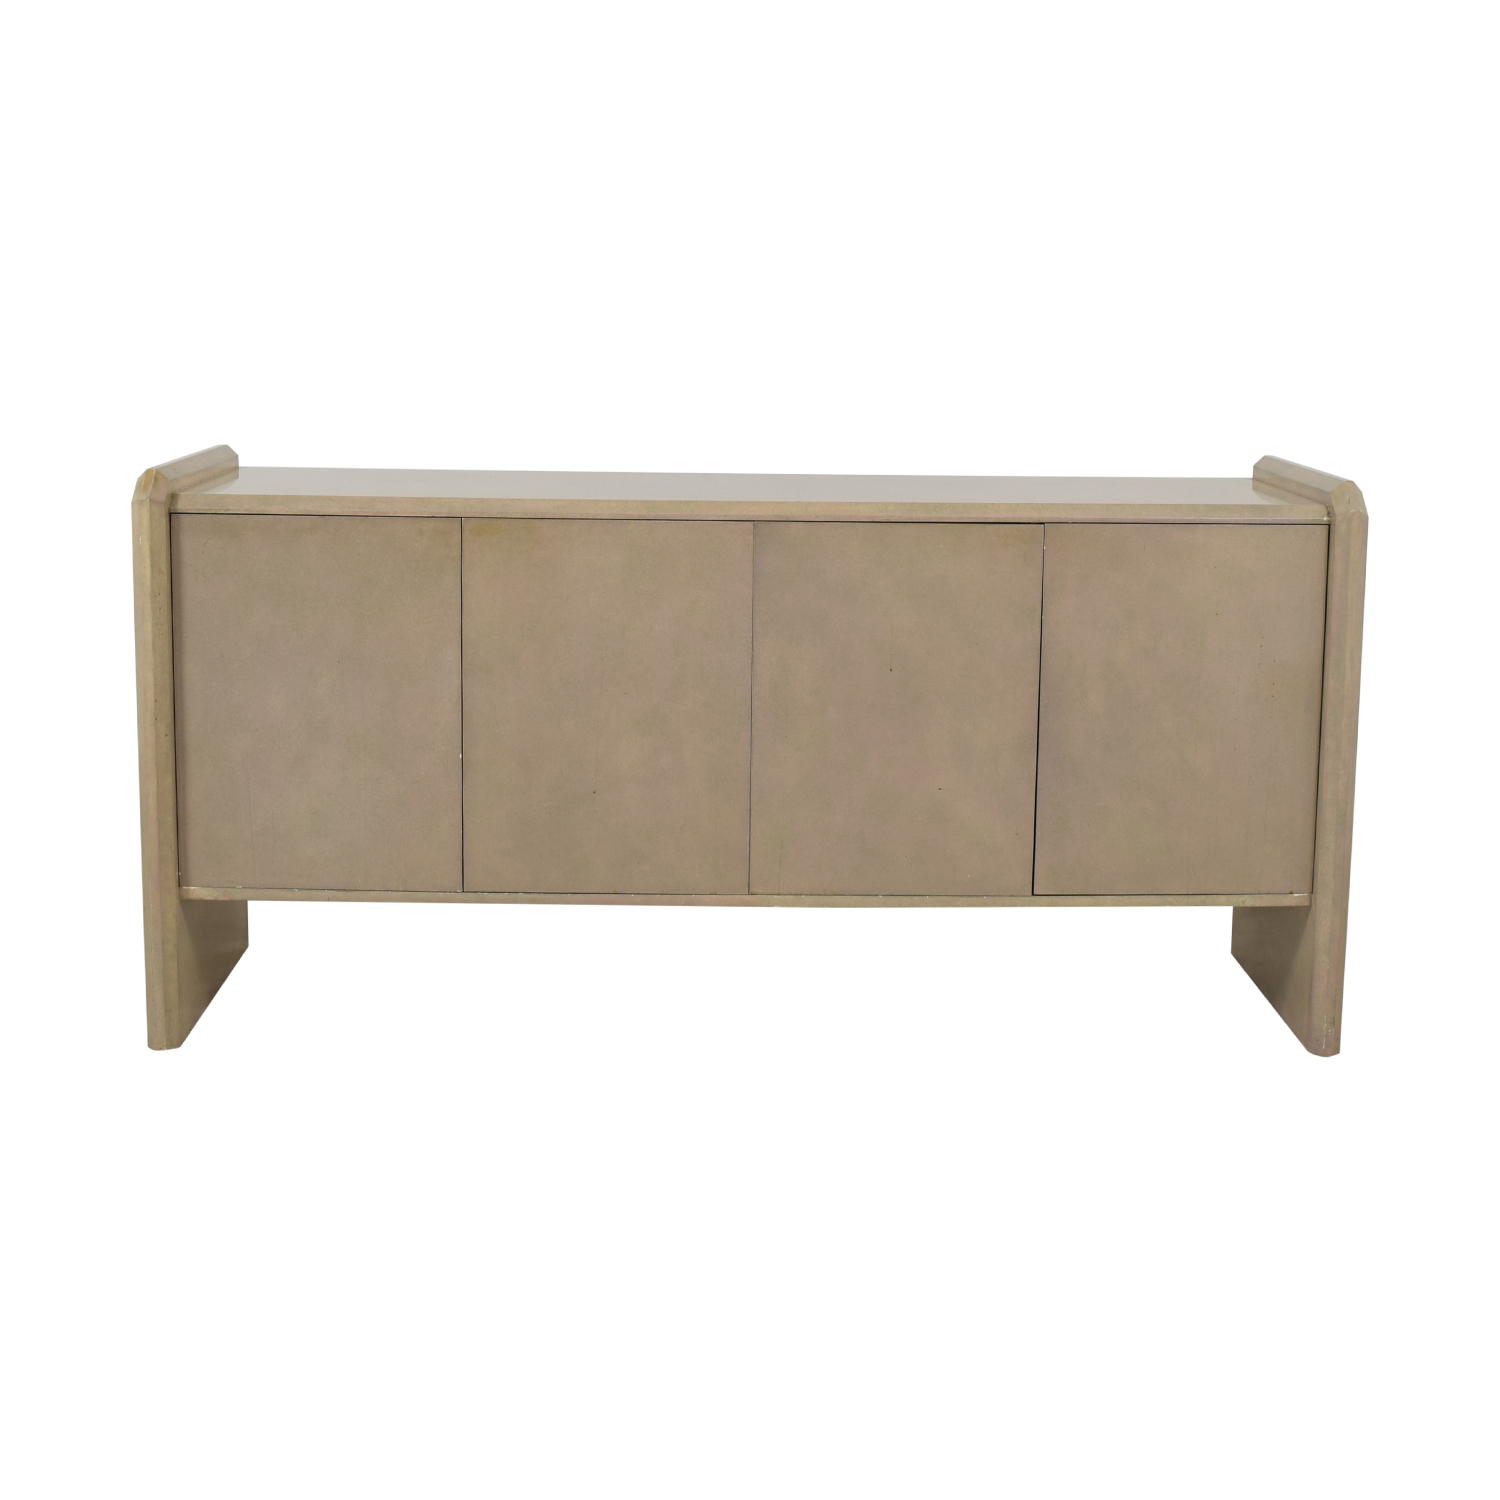 81% Off – Blush Pink Lacquer Entryway Credenza / Storage Pertaining To Blush Deco Credenzas (Gallery 7 of 30)